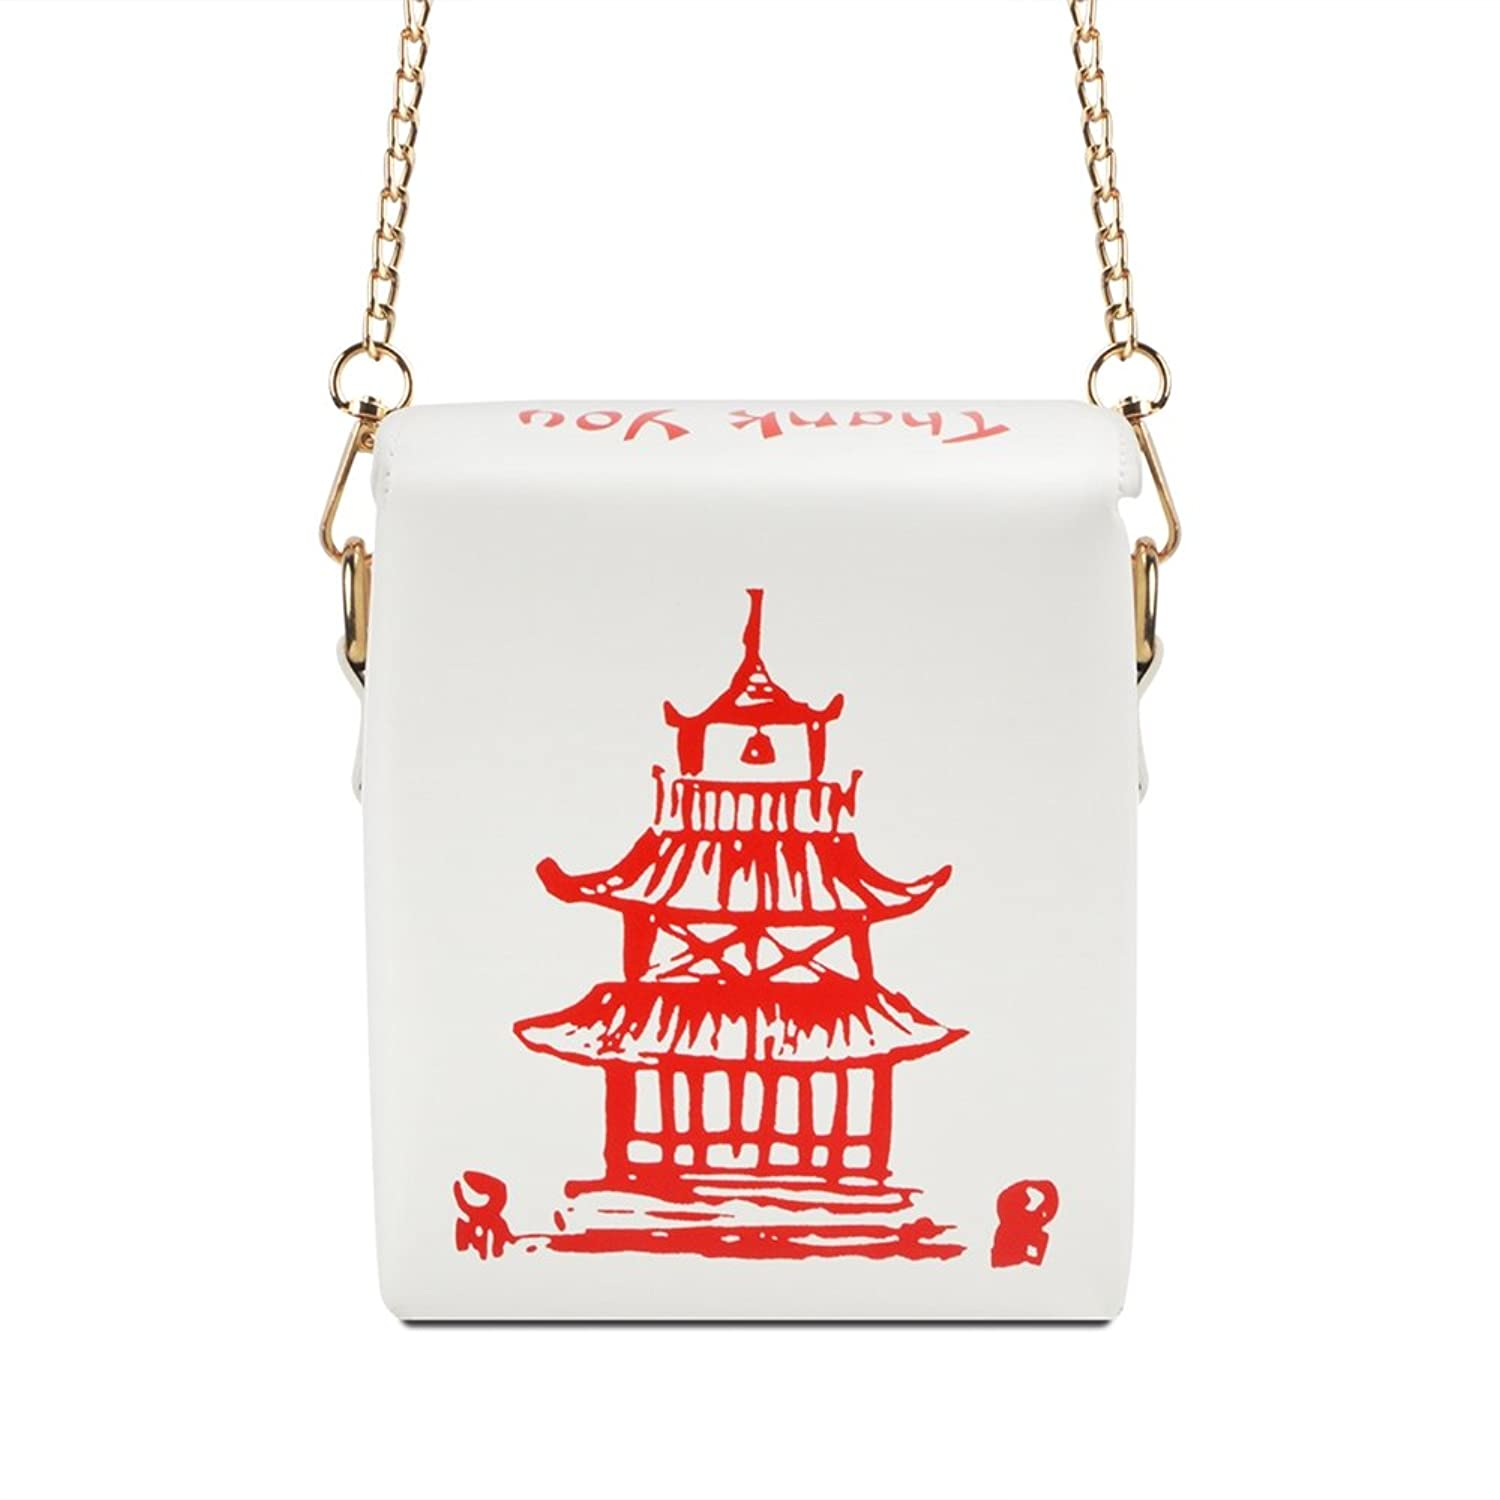 Fashion Crossbody Bag, Ustyle Chinese Takeout Box Style Clutch Bag For Girl by U Style